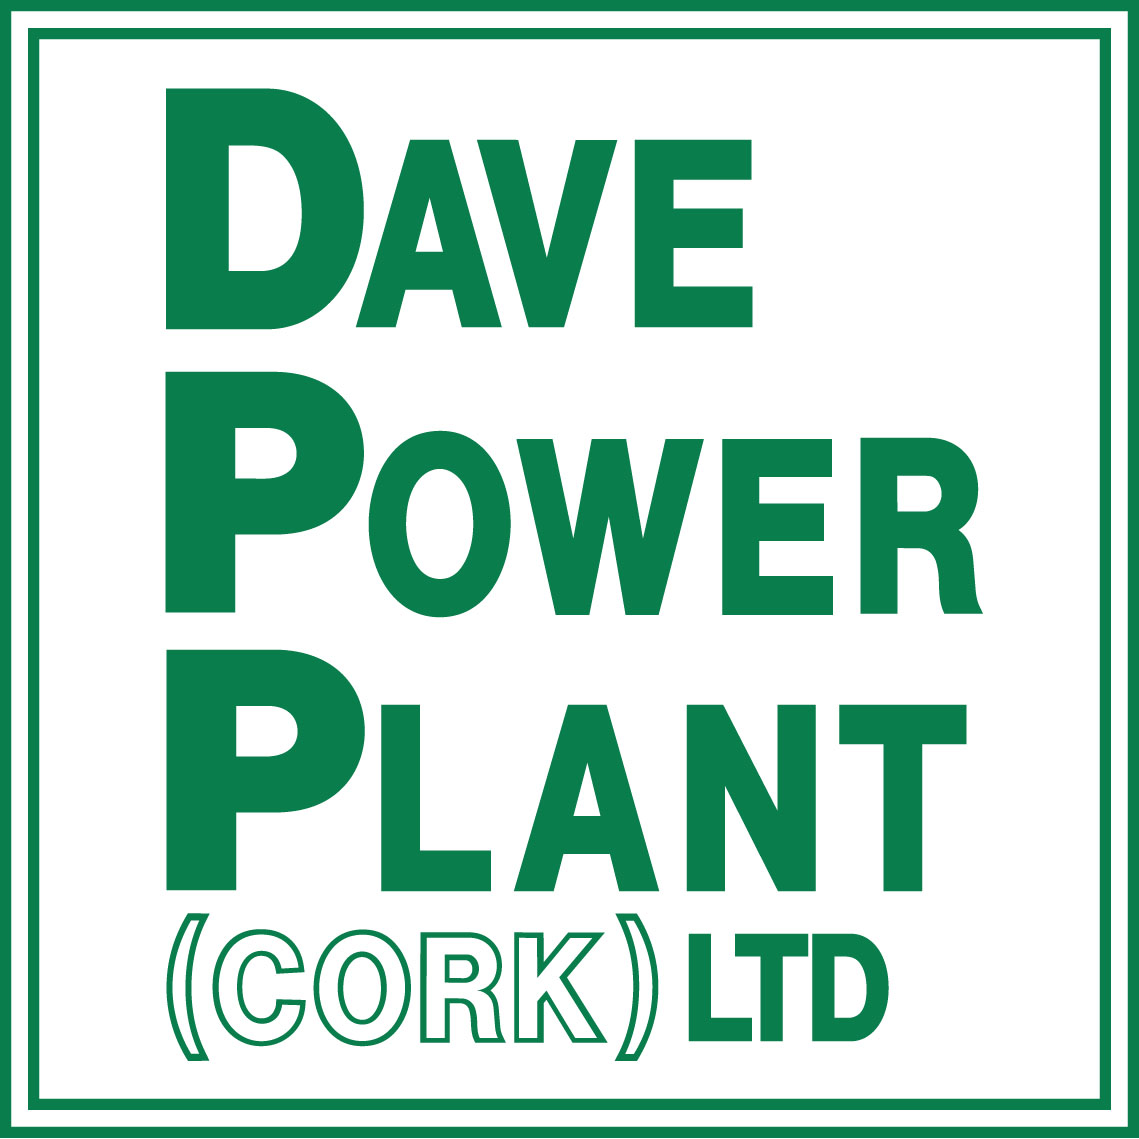 Dave Power Plant